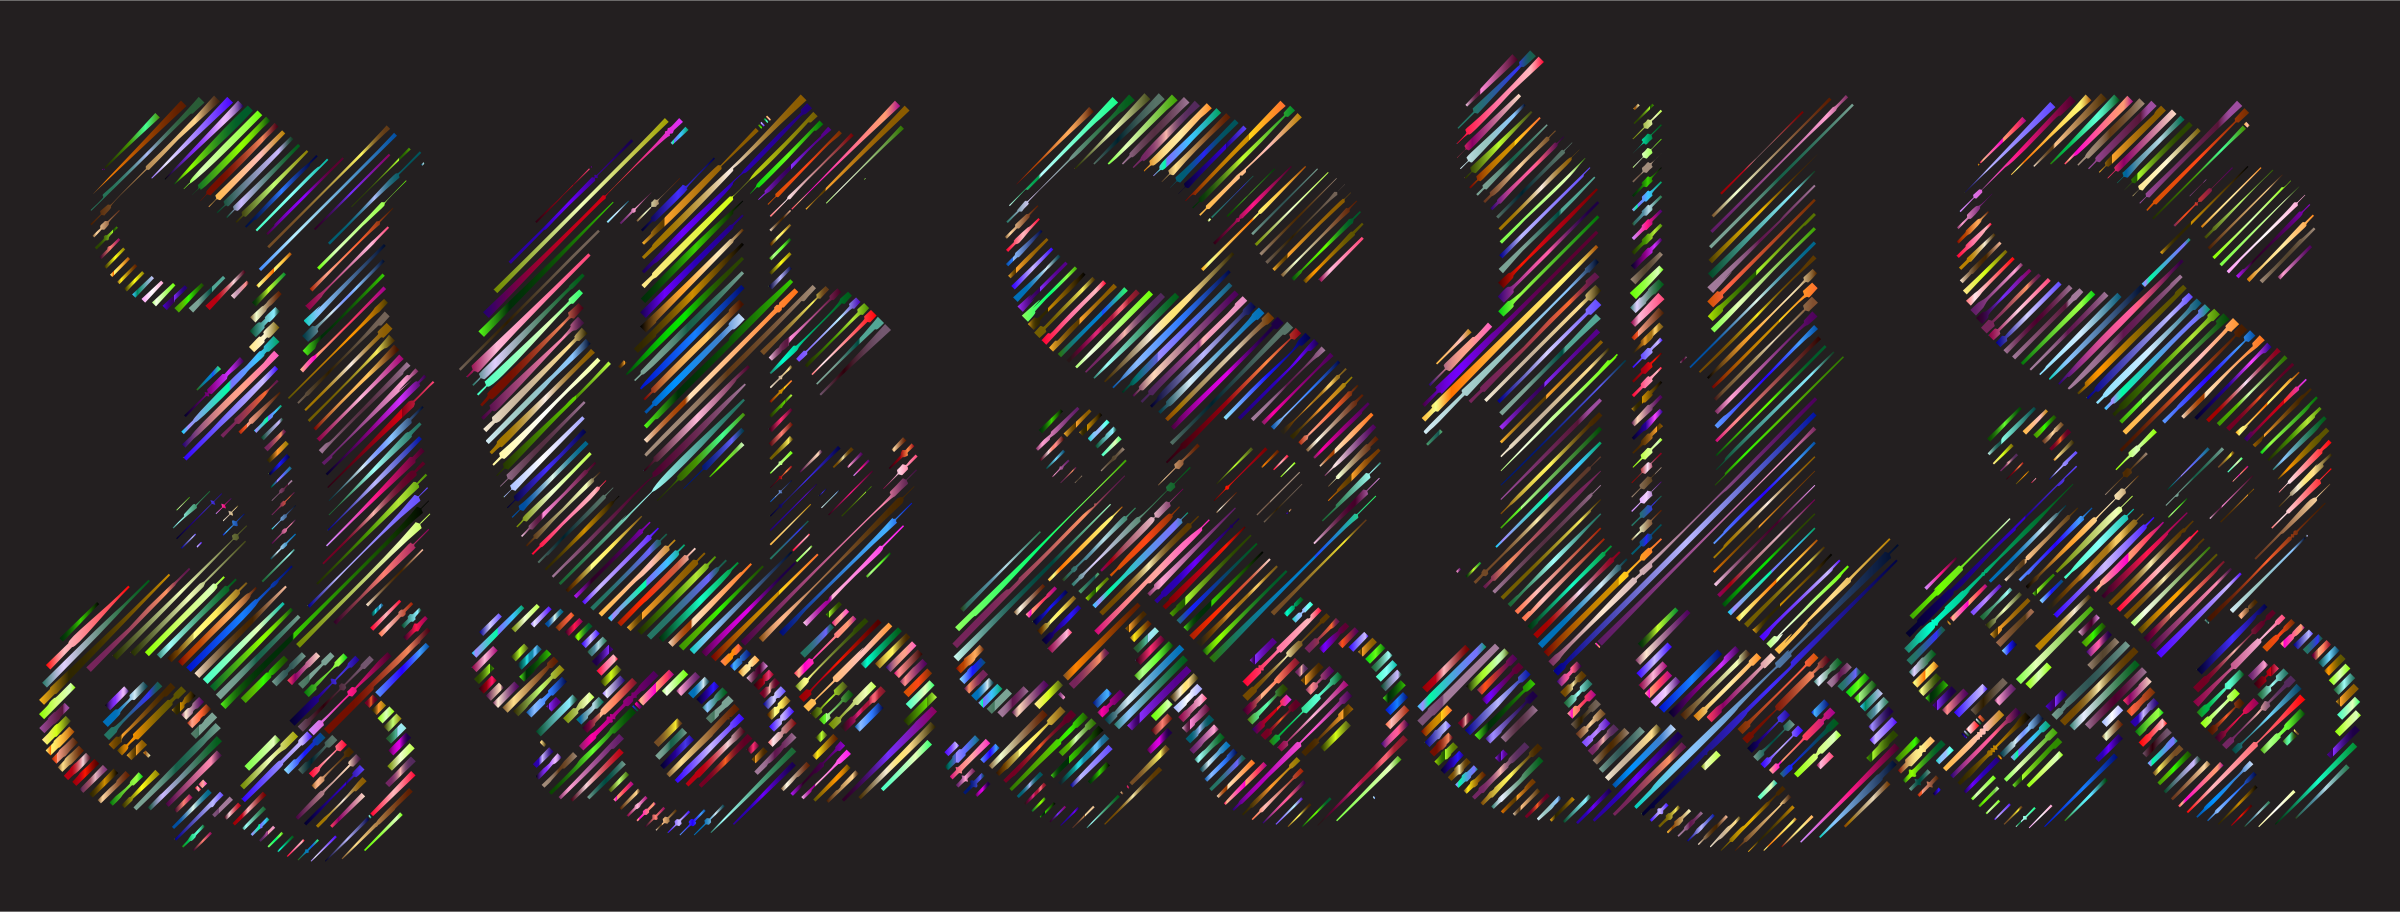 Prismatic Jesus Typography Lines 3 by GDJ